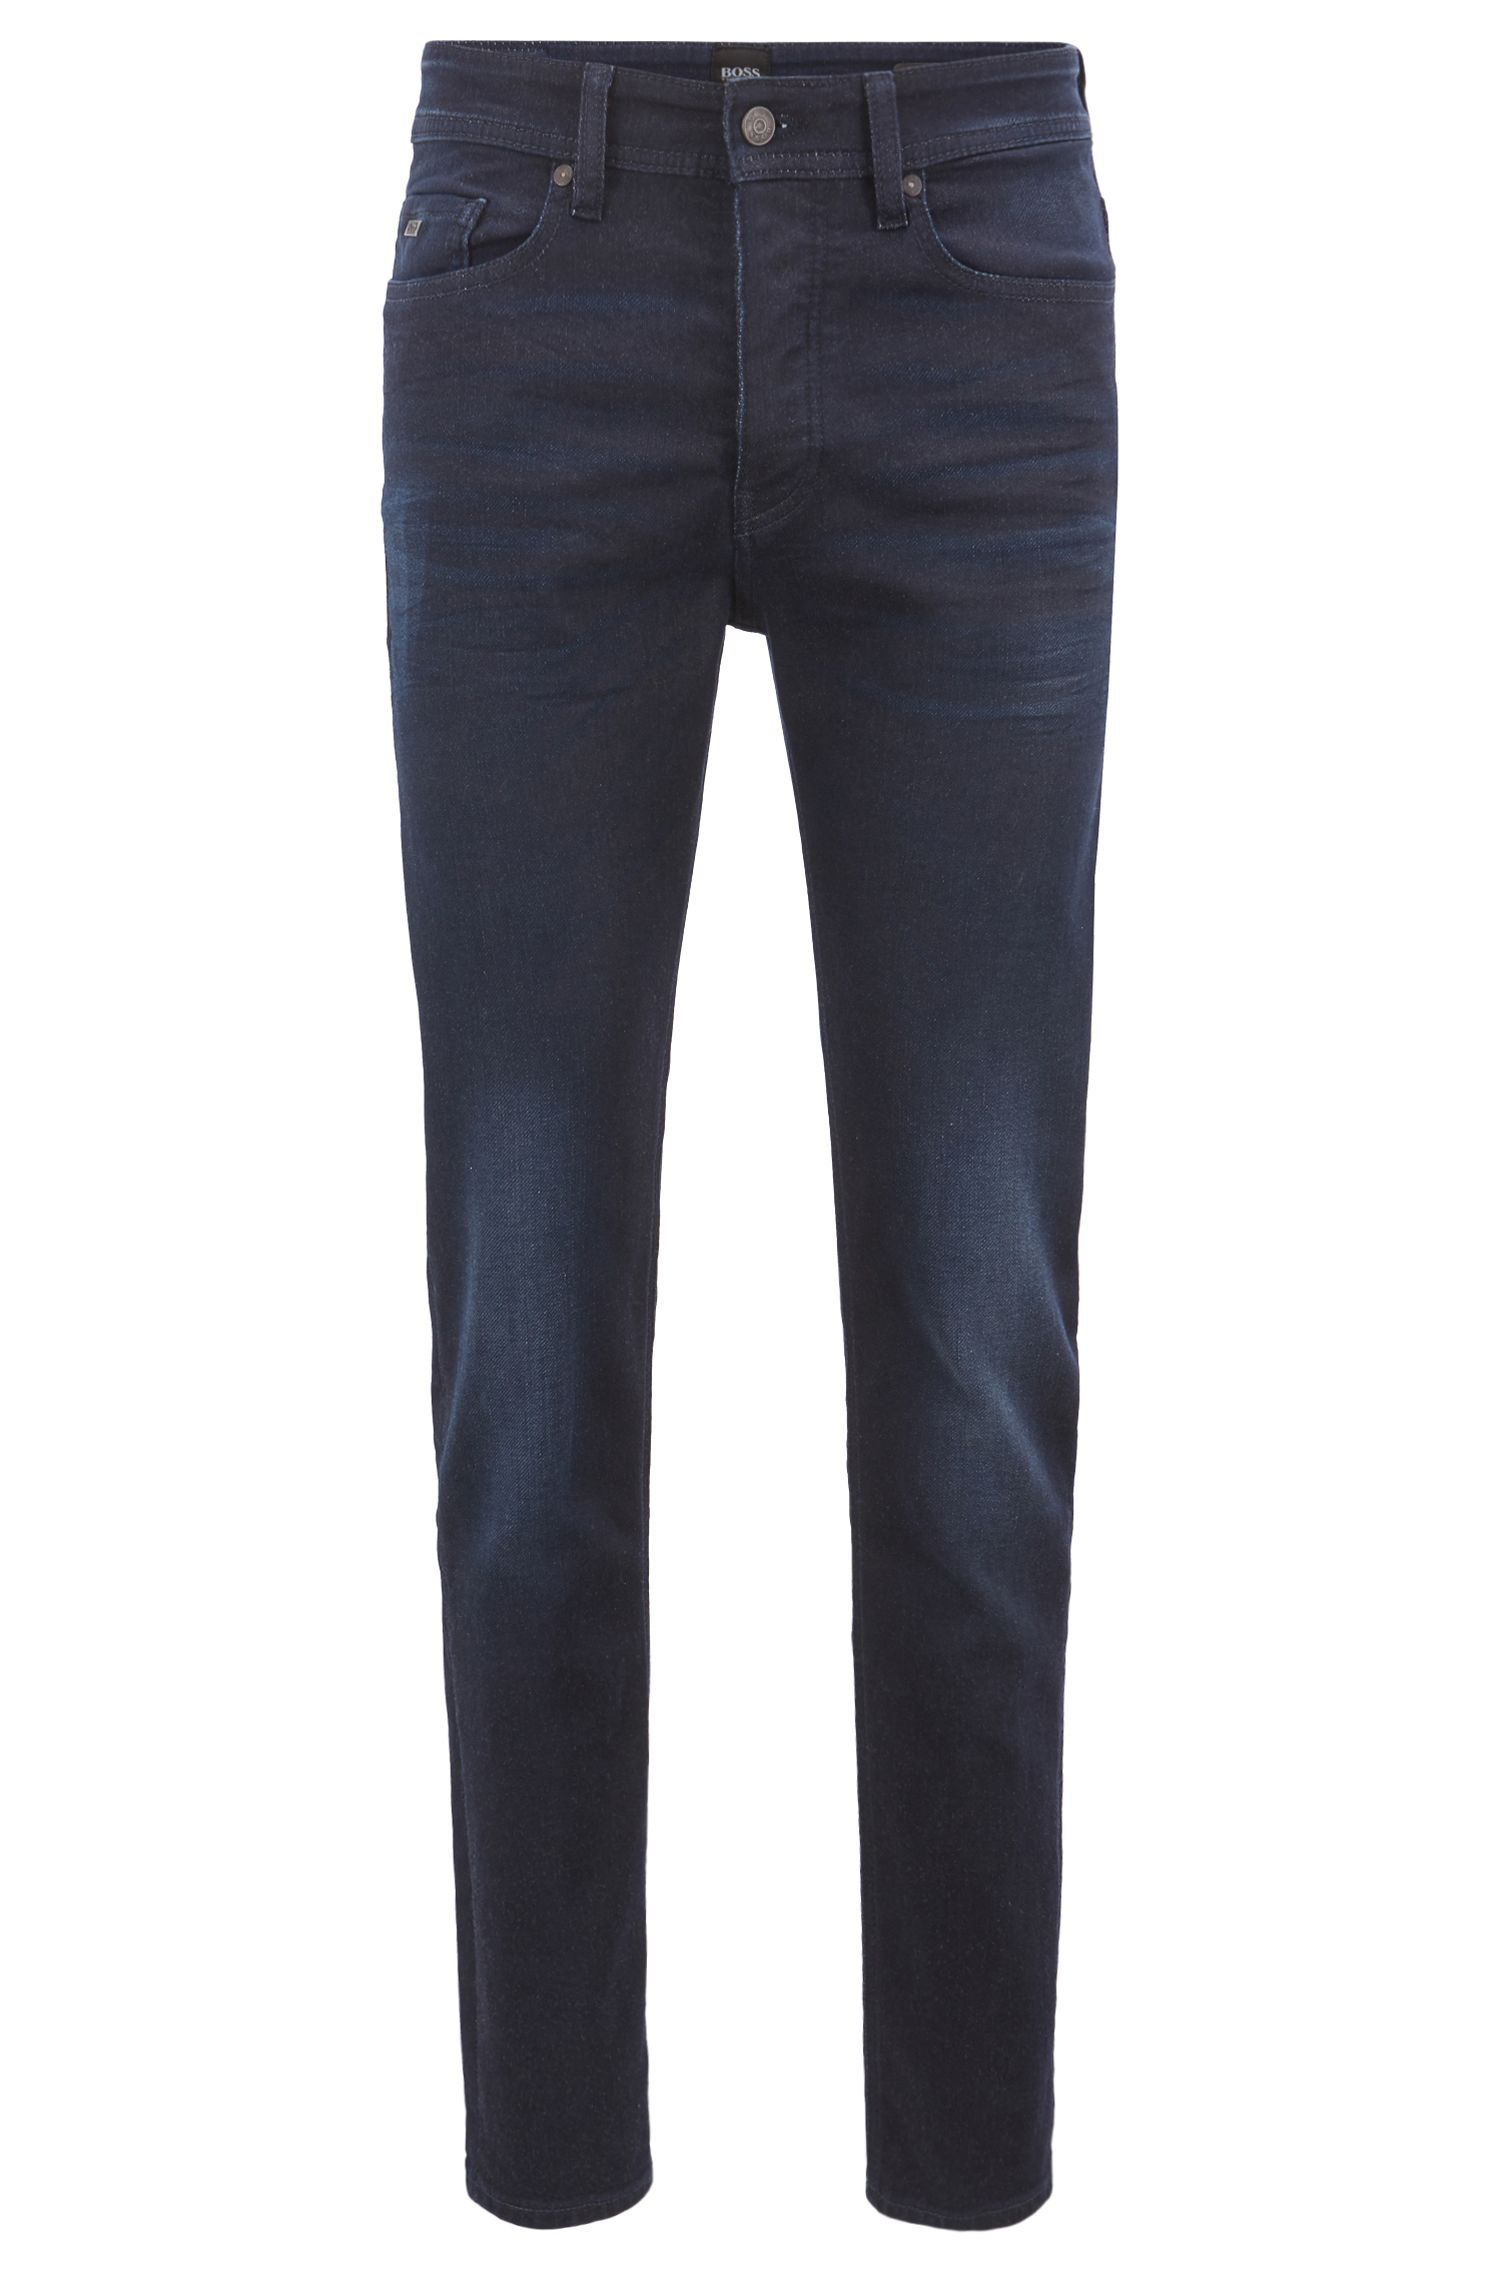 Jeans tapered fit in denim elasticizzato con filati di qualità, Blu scuro